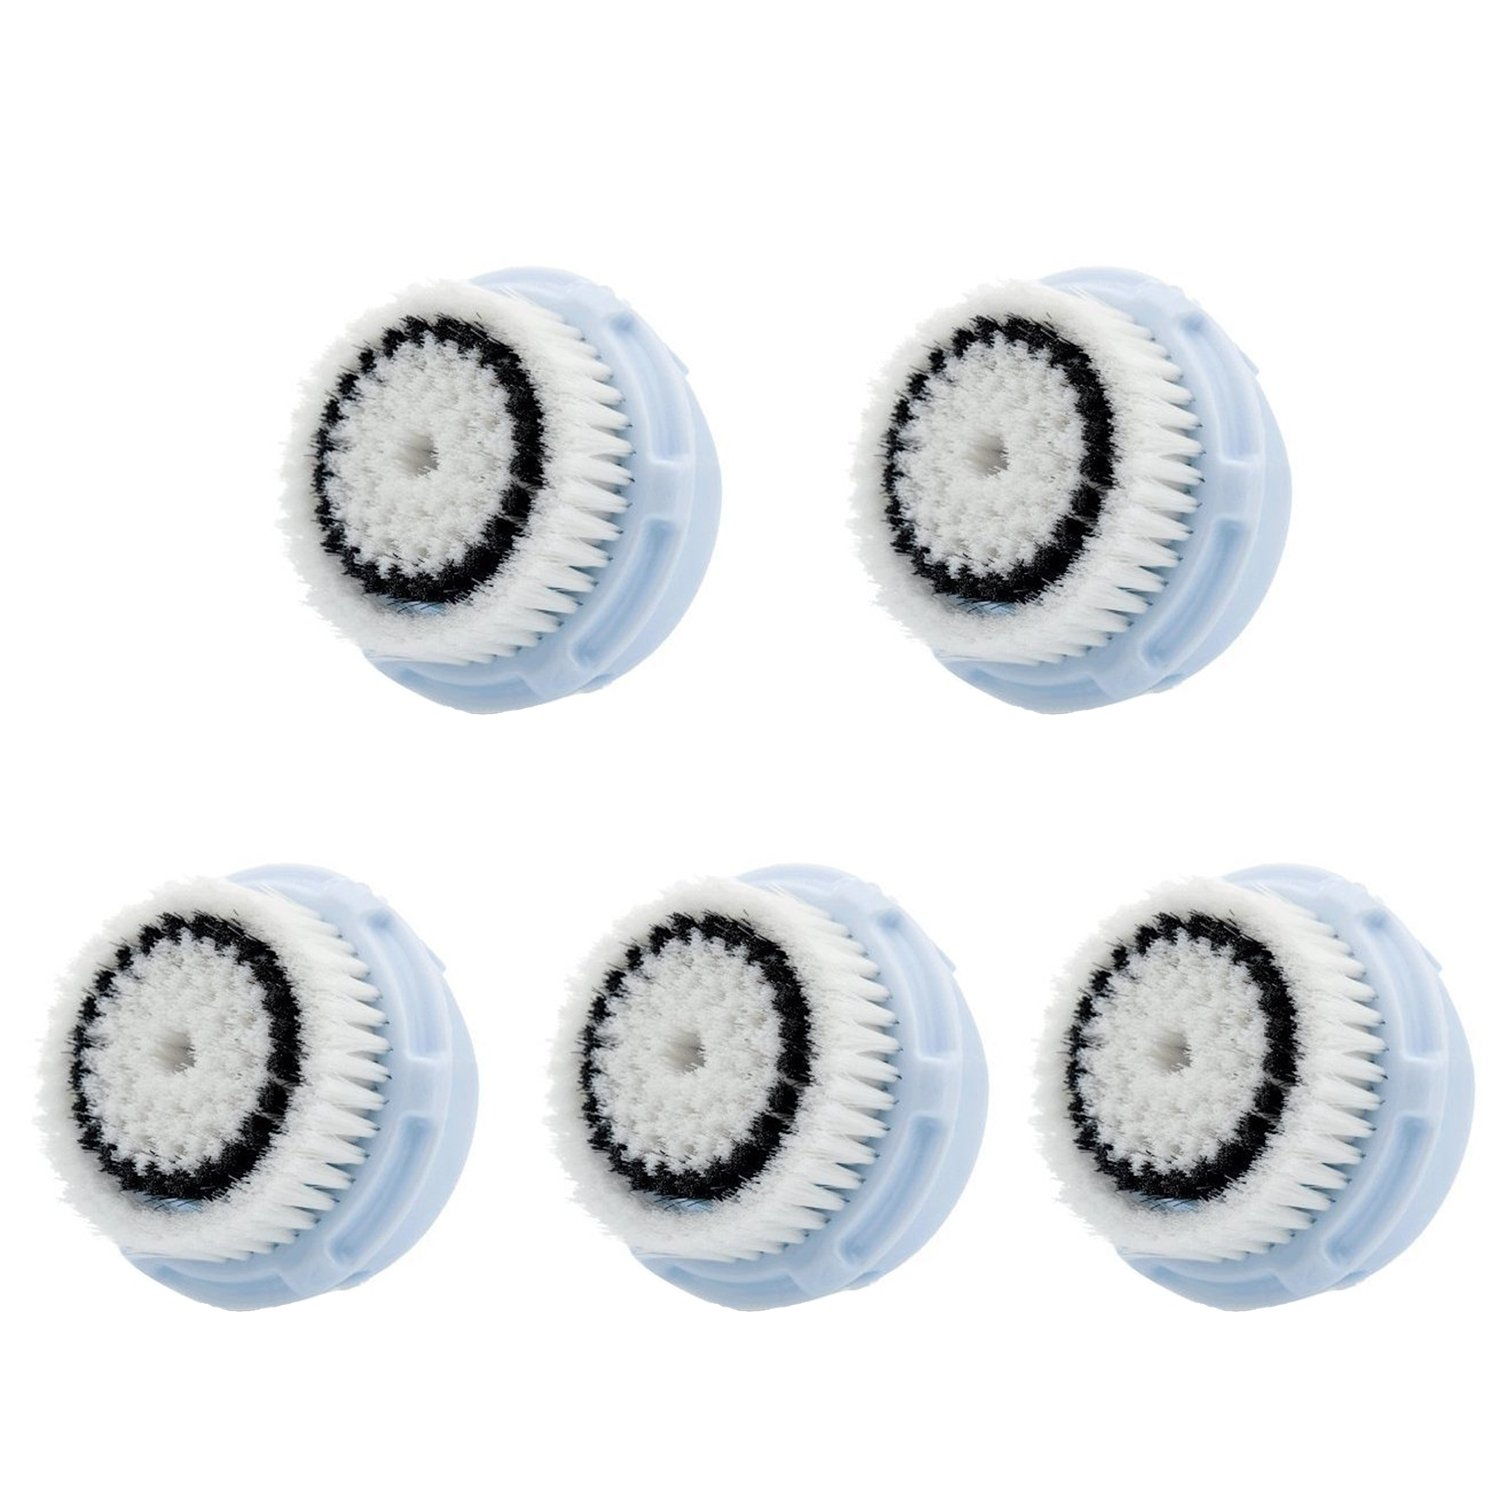 LSQtronics Delicate Facial Brush Heads for Clarisonic. Face Cleansing Brush Heads for Daily Skin Care. Compatible with Clarisonic MIA, MIA 2, ARIA, PRO and PLUS Cleansing Systems. (5-Pack Delicate Brush Head)